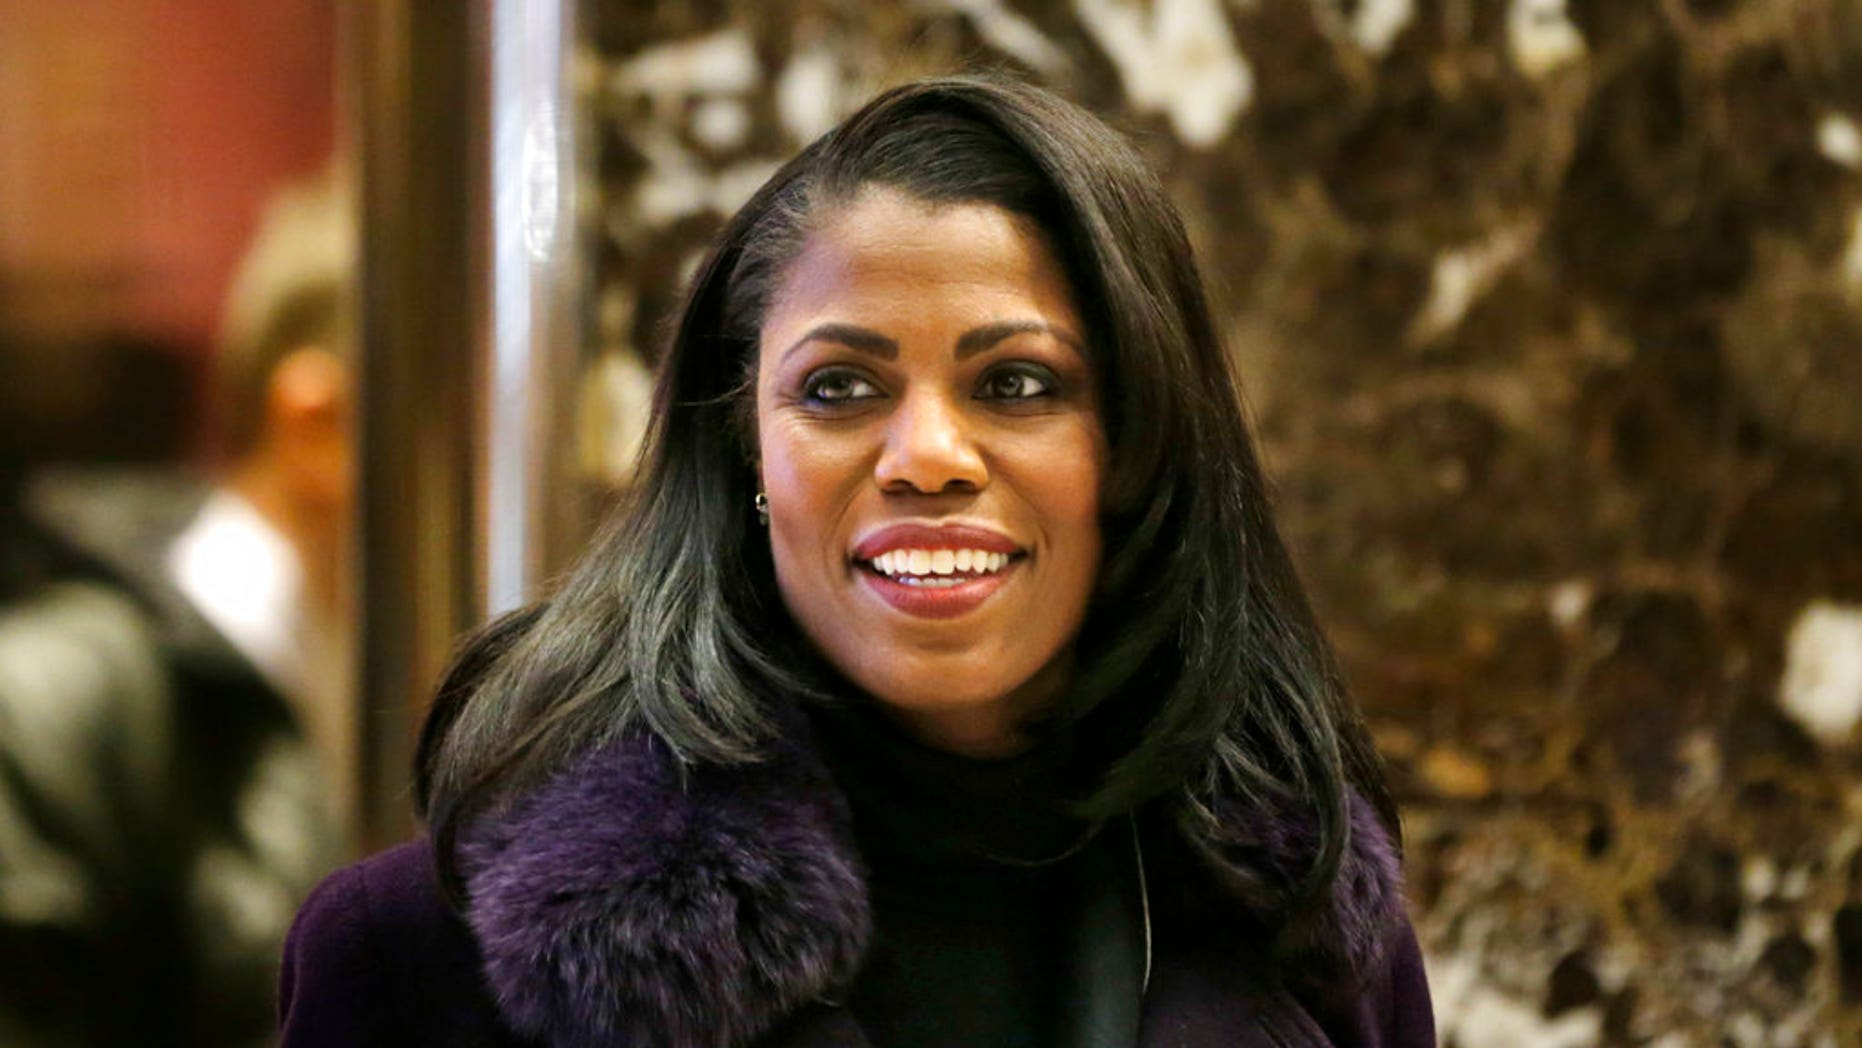 """Former Trump aide Omarosa Manigault Newman will be joining the cast of CBS' debut season of """"Celebrity Big Brother,"""" the network announced Sunday."""